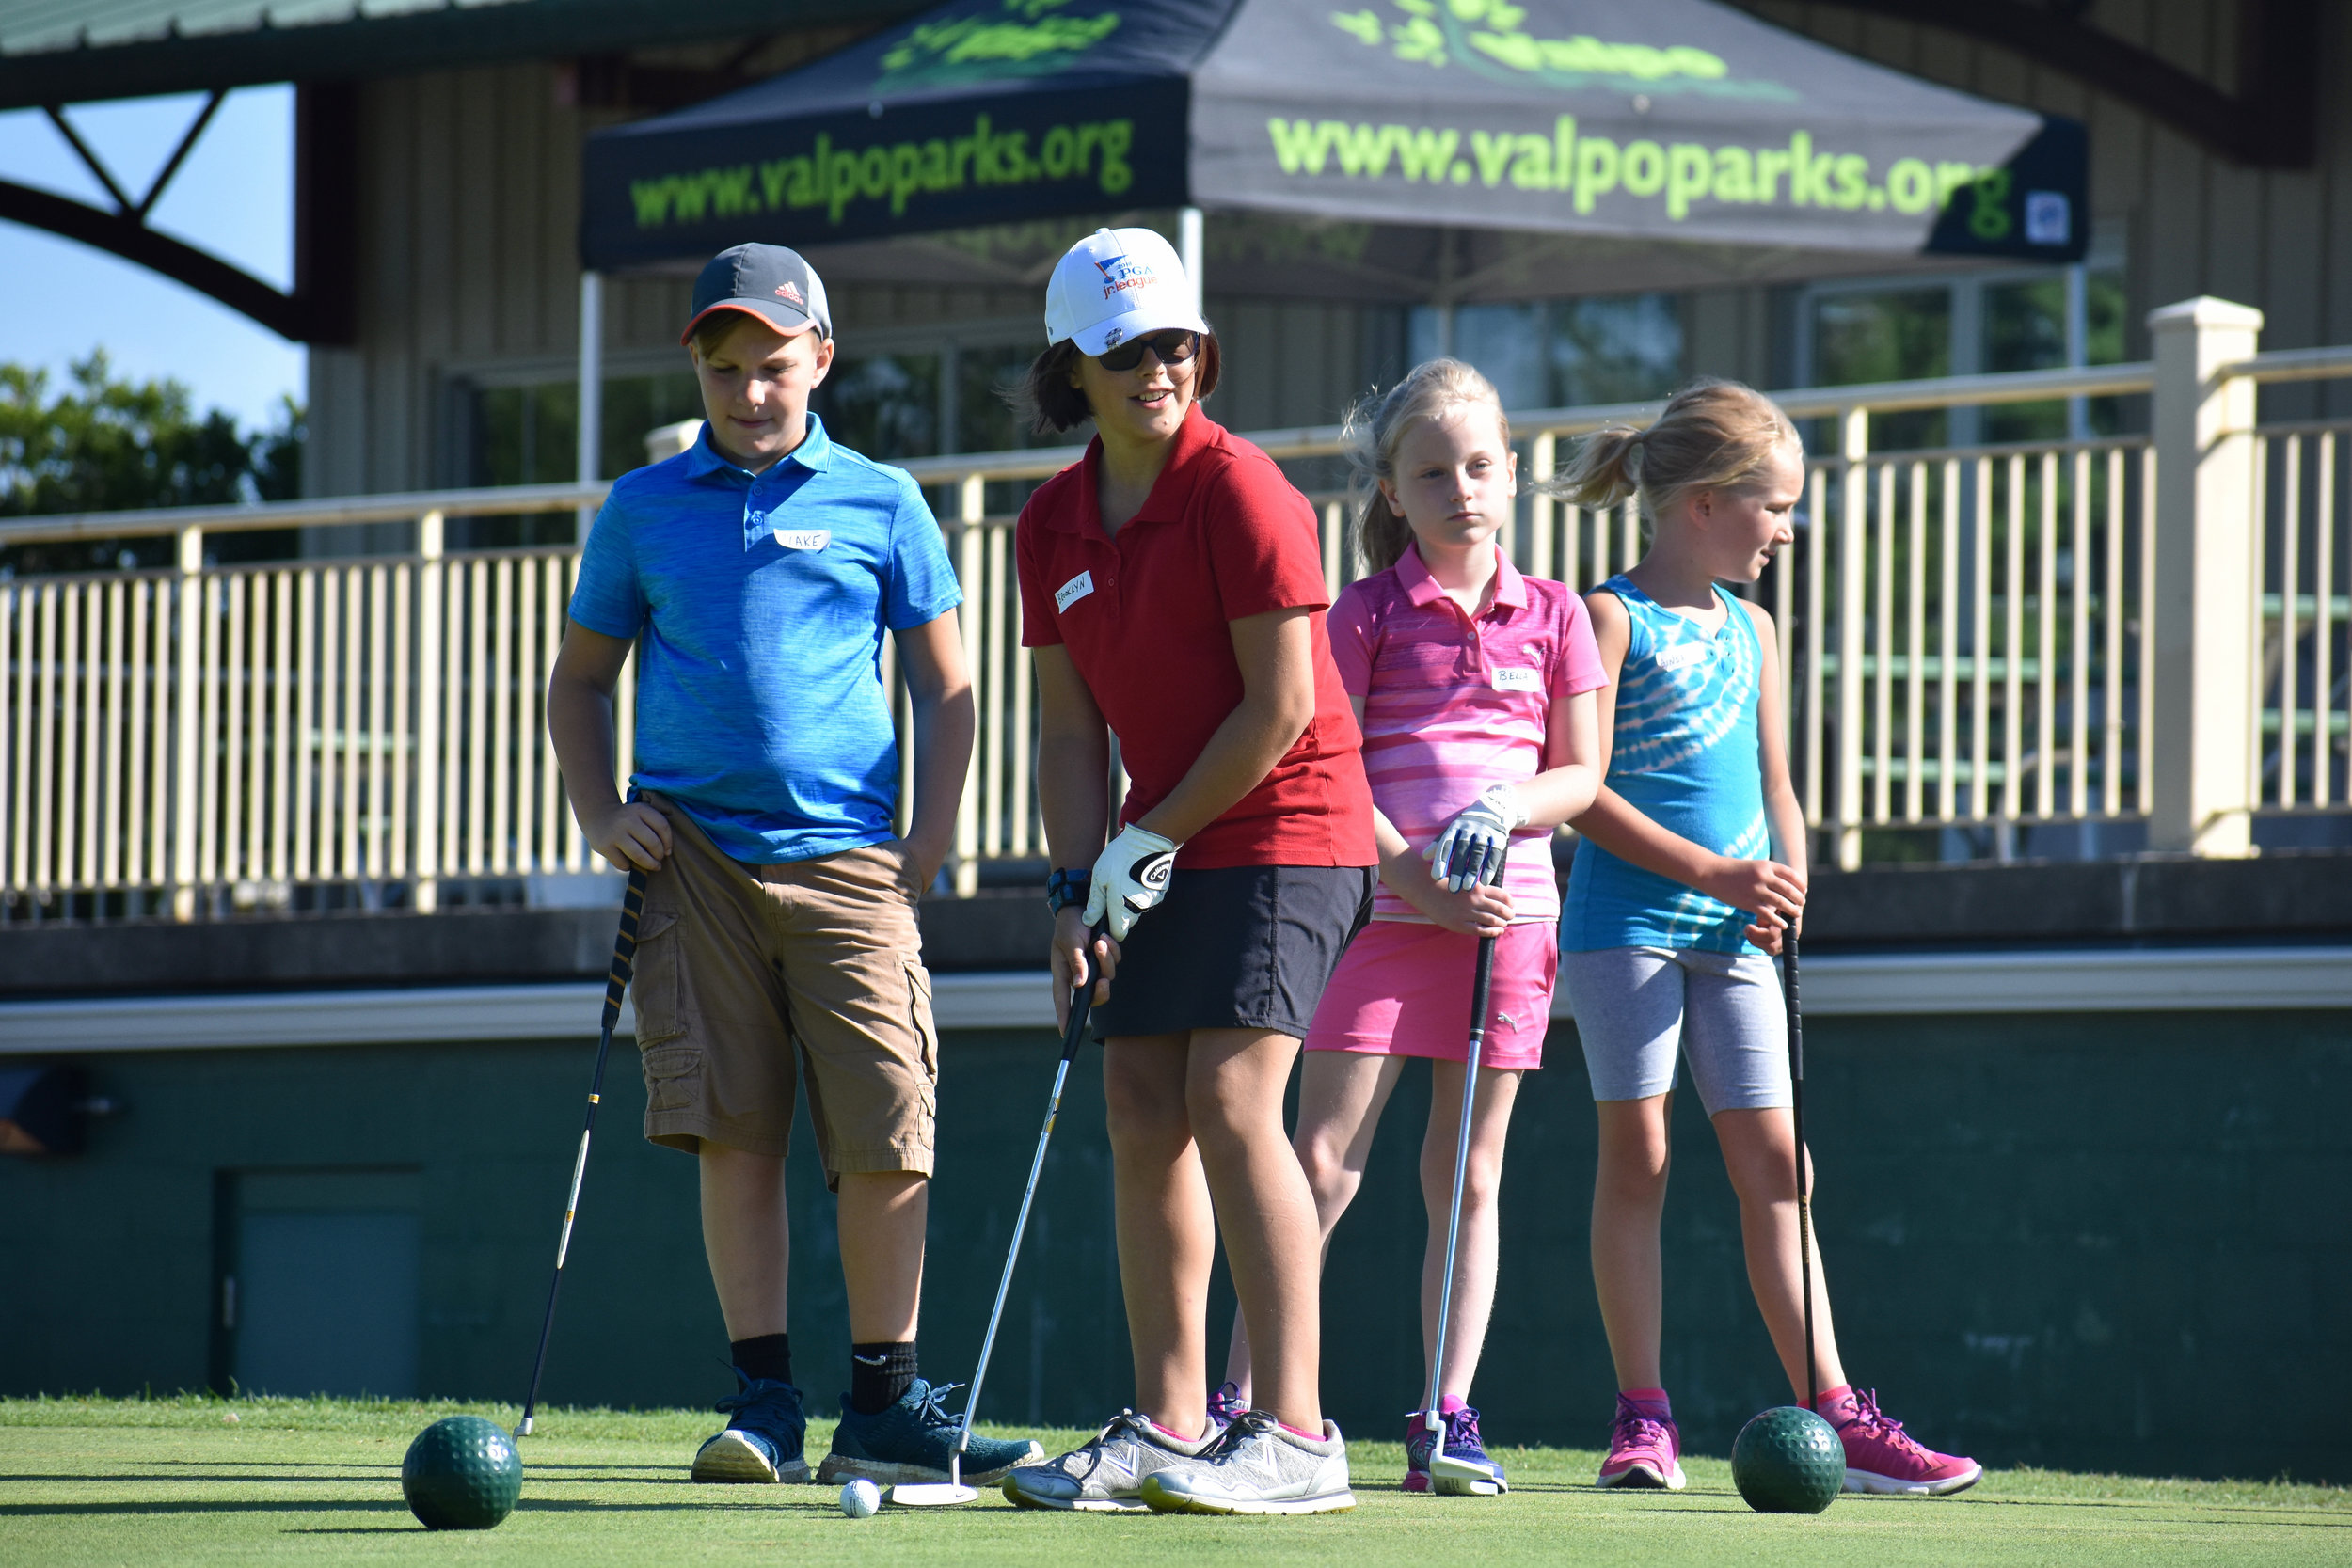 young lady putting.jpg